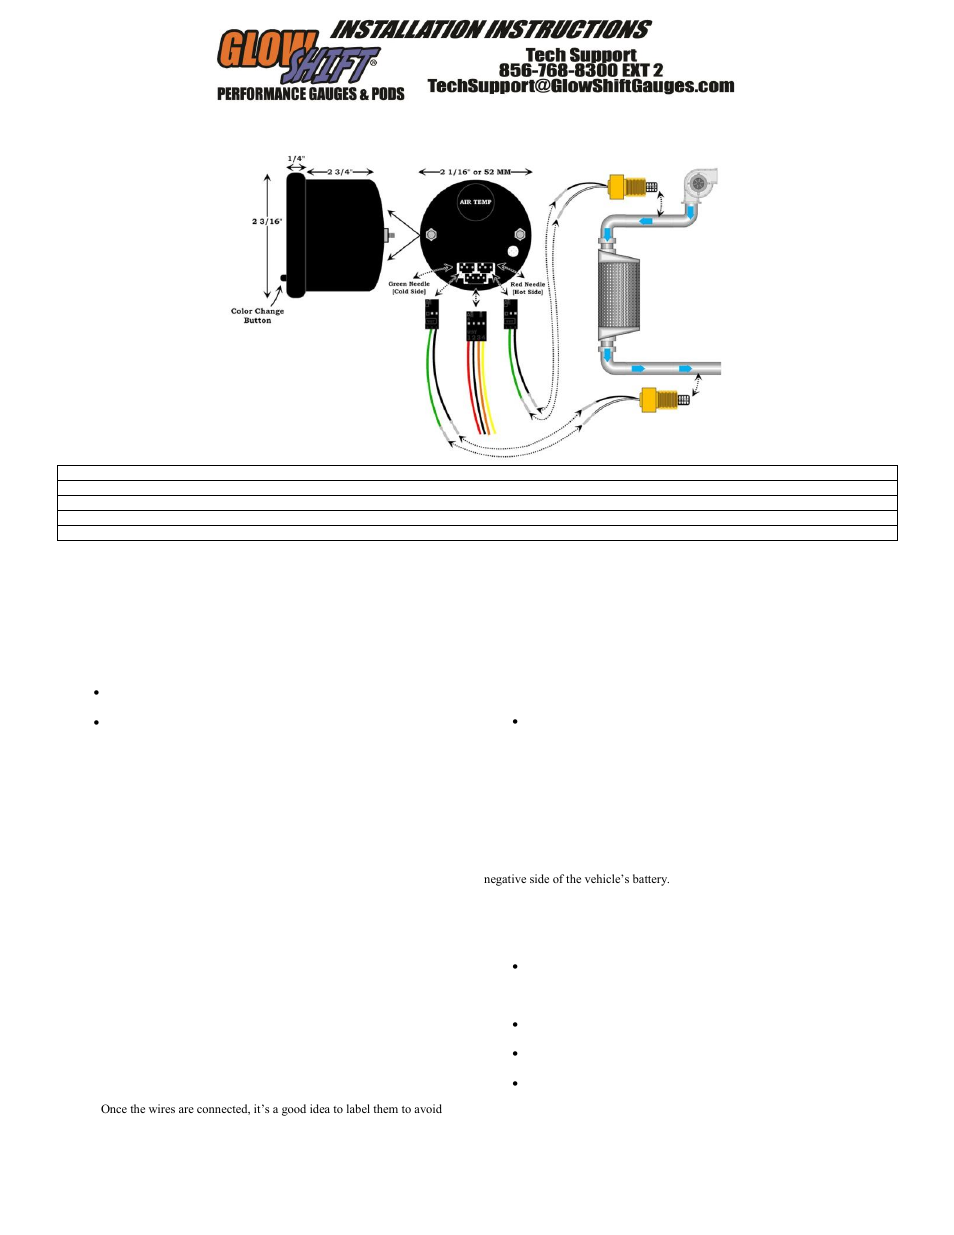 glowshift 7 color series dual air intake temperature gauge page1 glowshift 7 color series dual air intake temperature gauge user Electric Speedometer Gauge Wiring Diagram at readyjetset.co